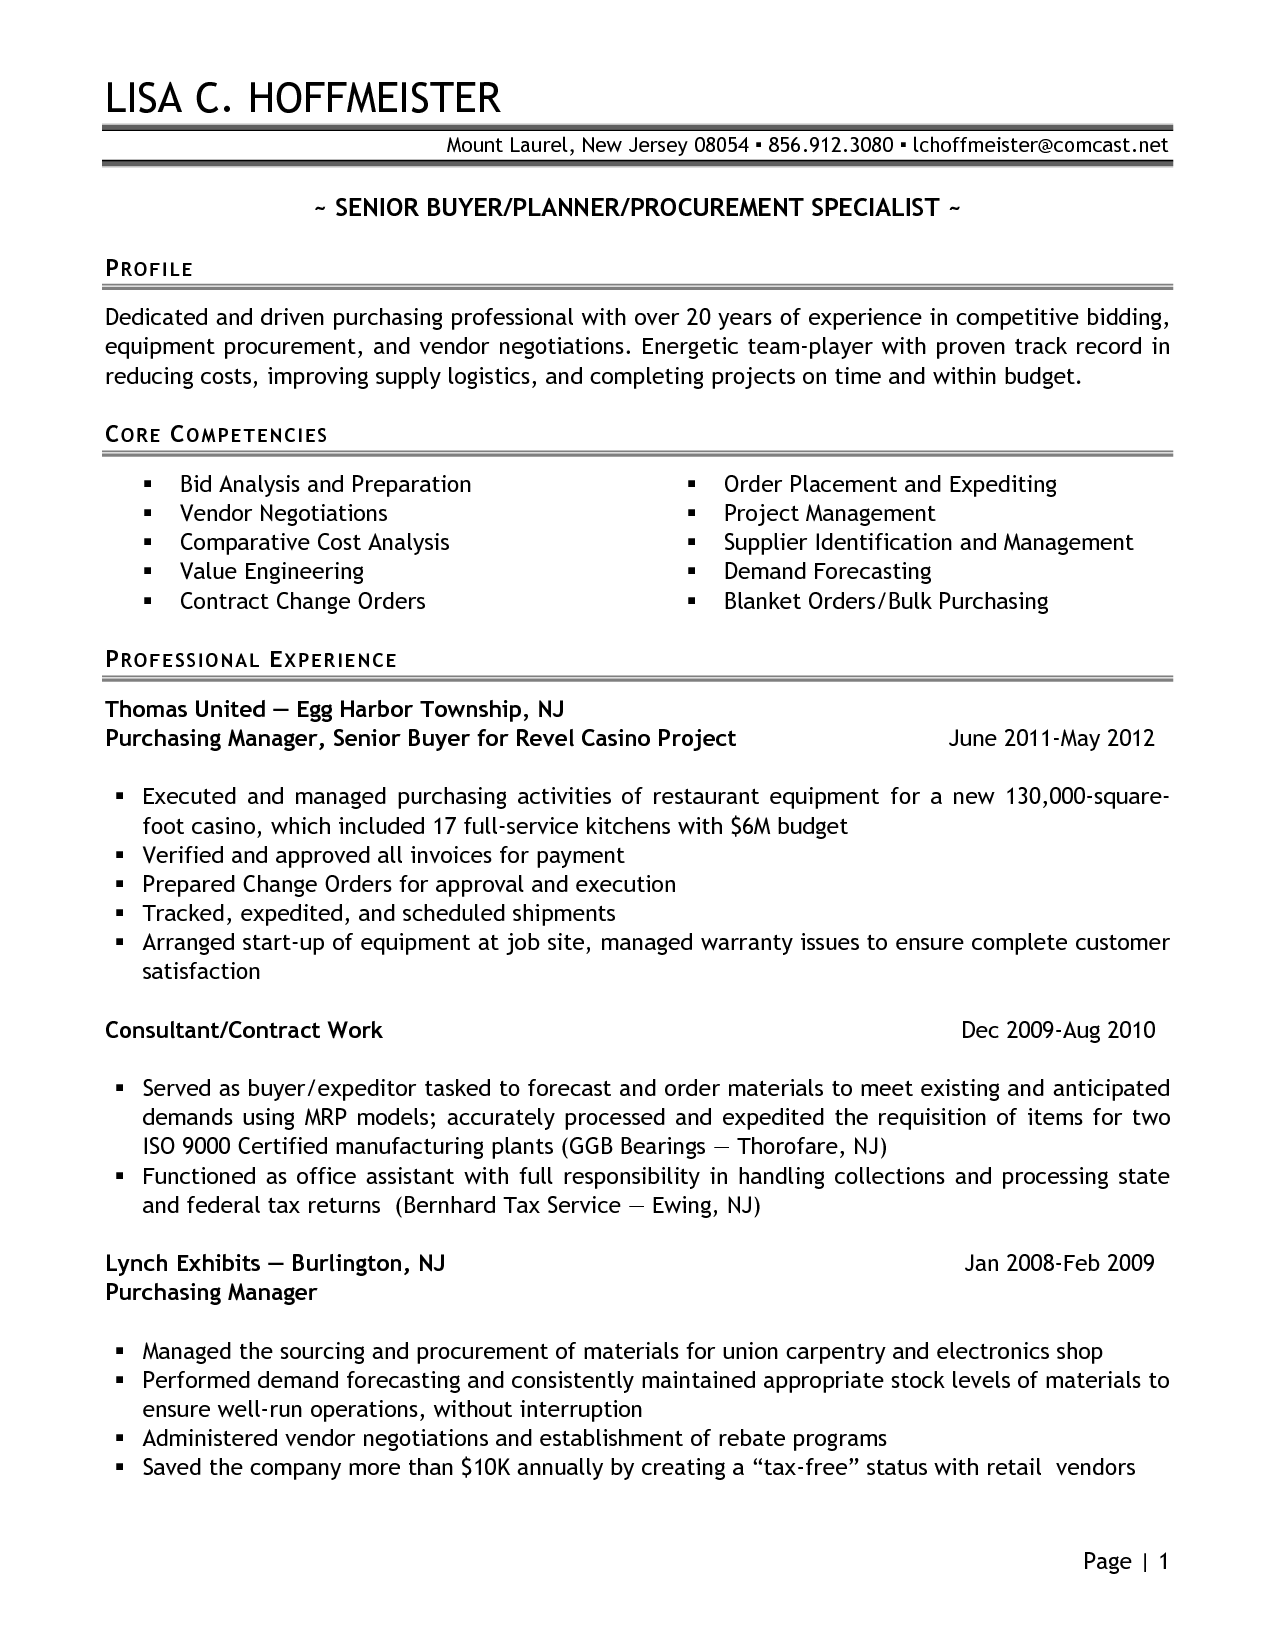 finance resume core competencies resume maker create finance resume core competencies accountingfinance resume keywords resume world resume core competencies best skills for a